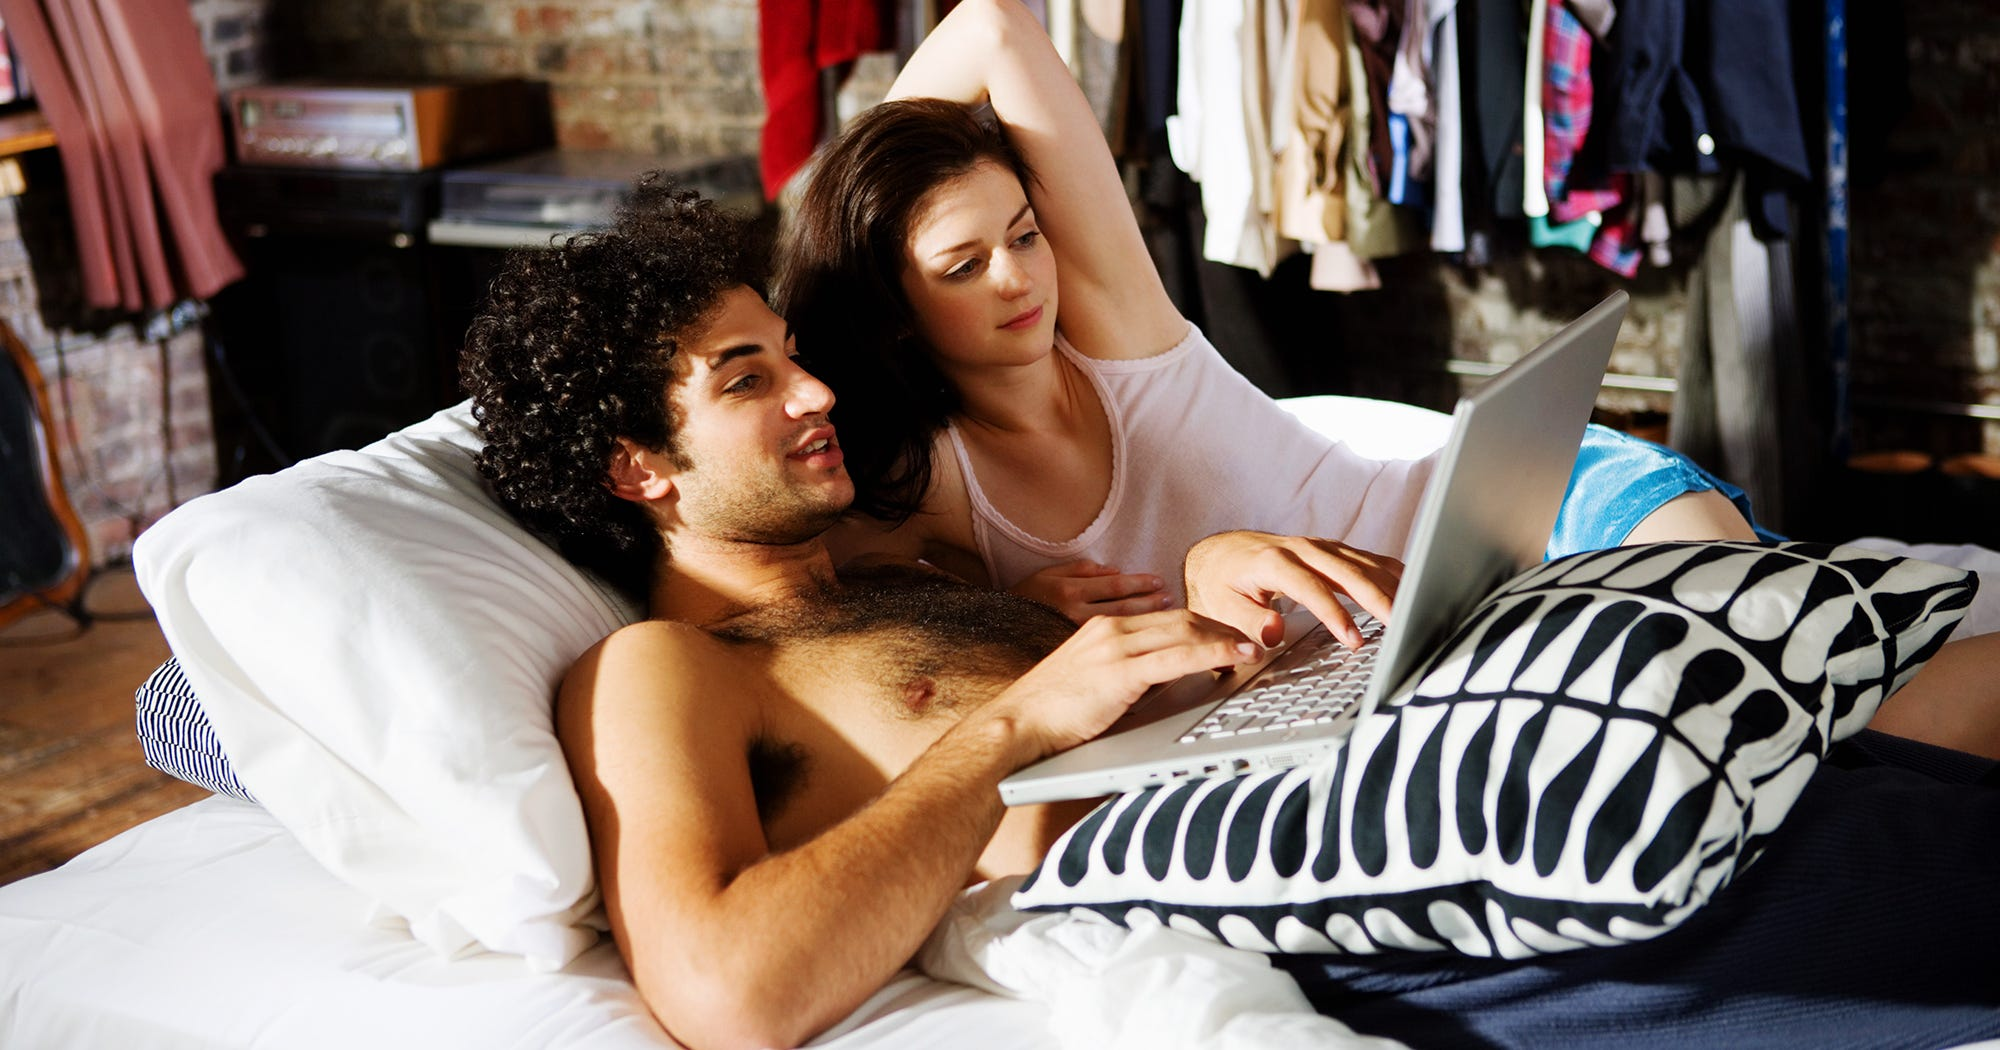 Where to find sex online